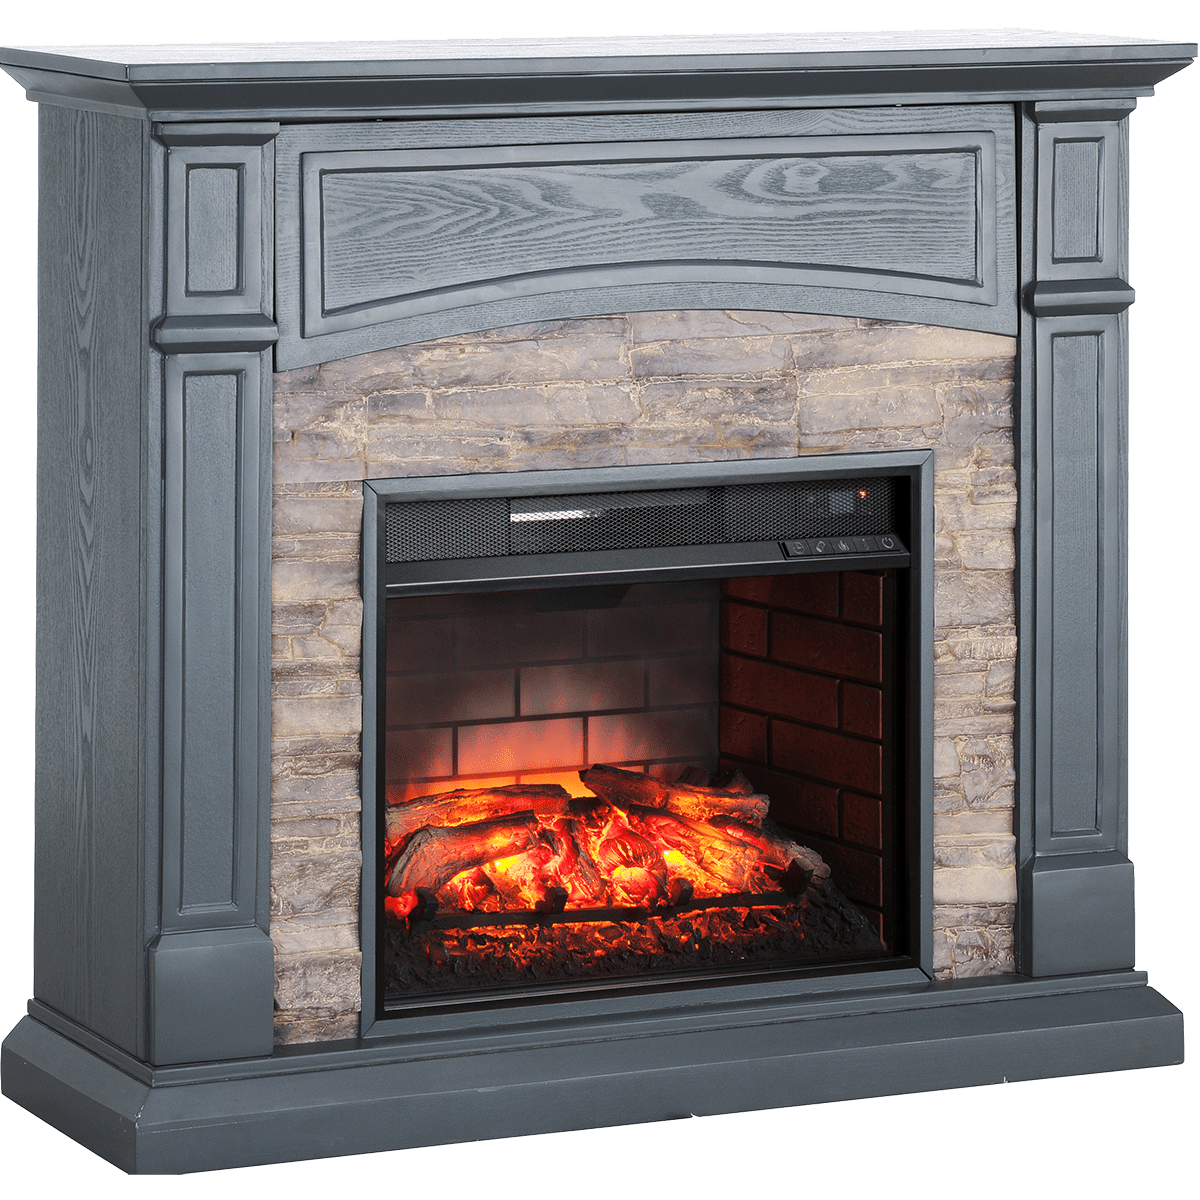 Shop Sylvane for free shipping on Southern Enterprises Seneca Electric Media Fireplaces